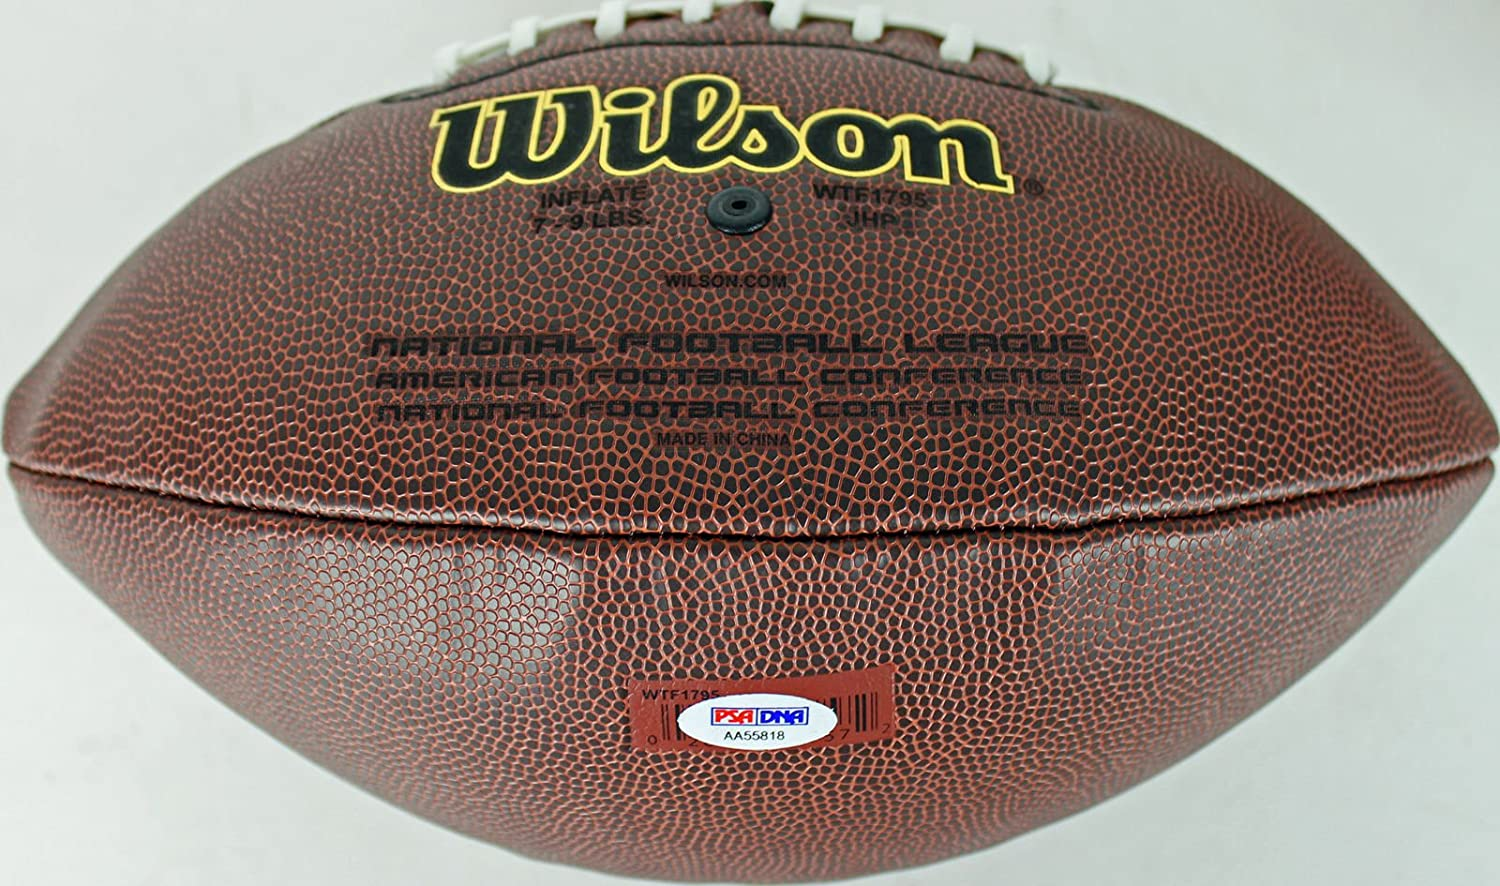 346d4091bb1 Bears Mike Ditka Autographed Signed Wilson NFL Football Autographed Signed  - PSA/DNA Certified at Amazon's Sports Collectibles Store